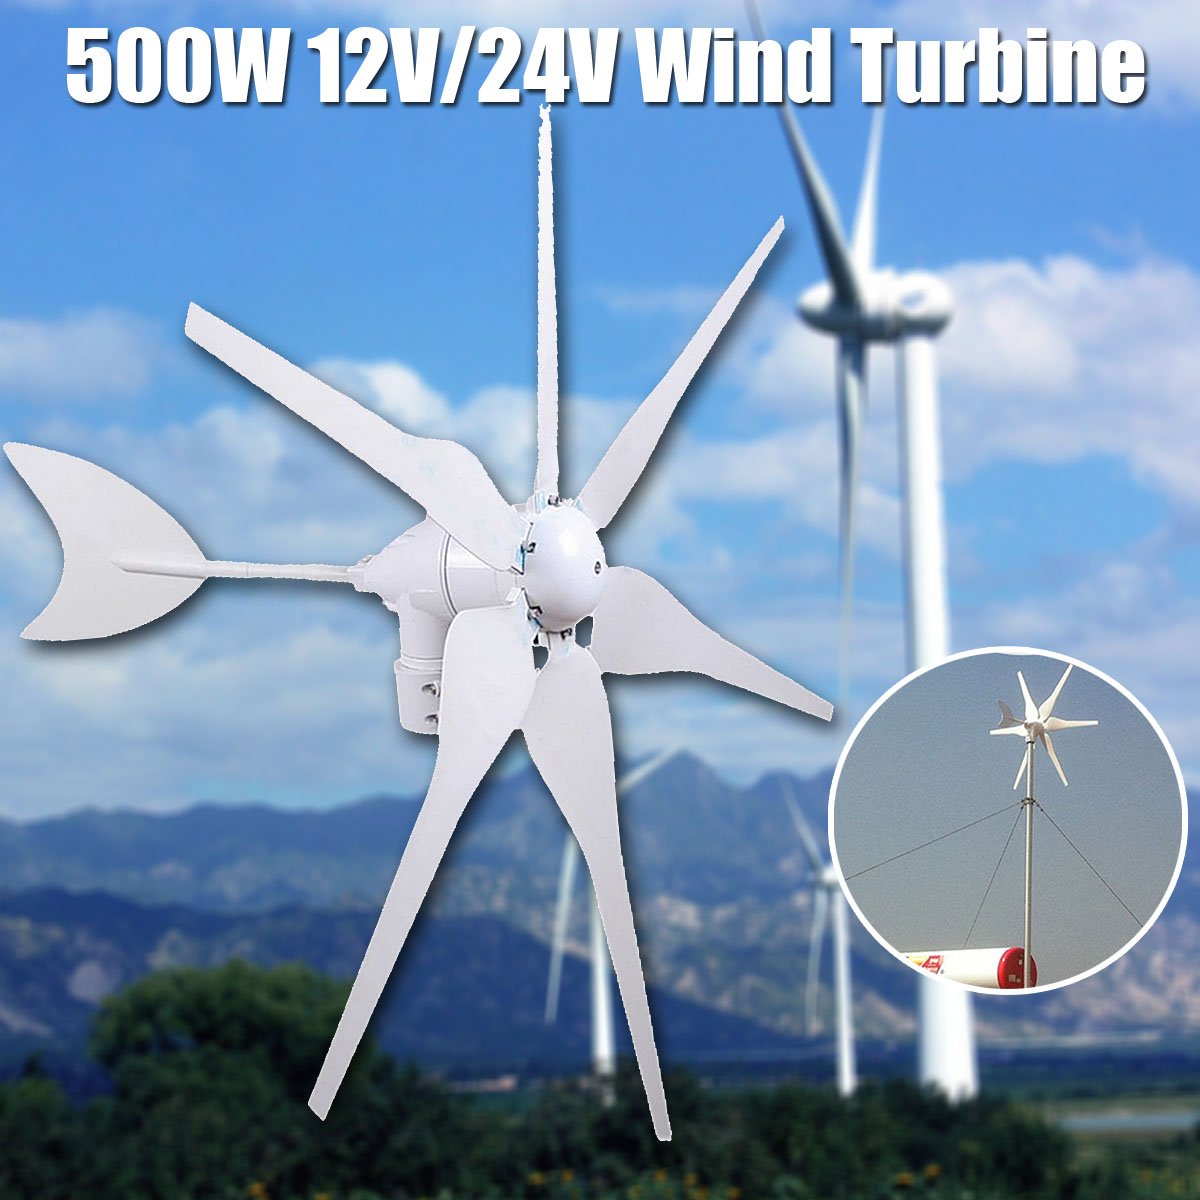 500W 12V/24V Energy Environmental 6 Blades Mini Wind Turbines Generator Miniature Wind Turbines Residential Home With Controller